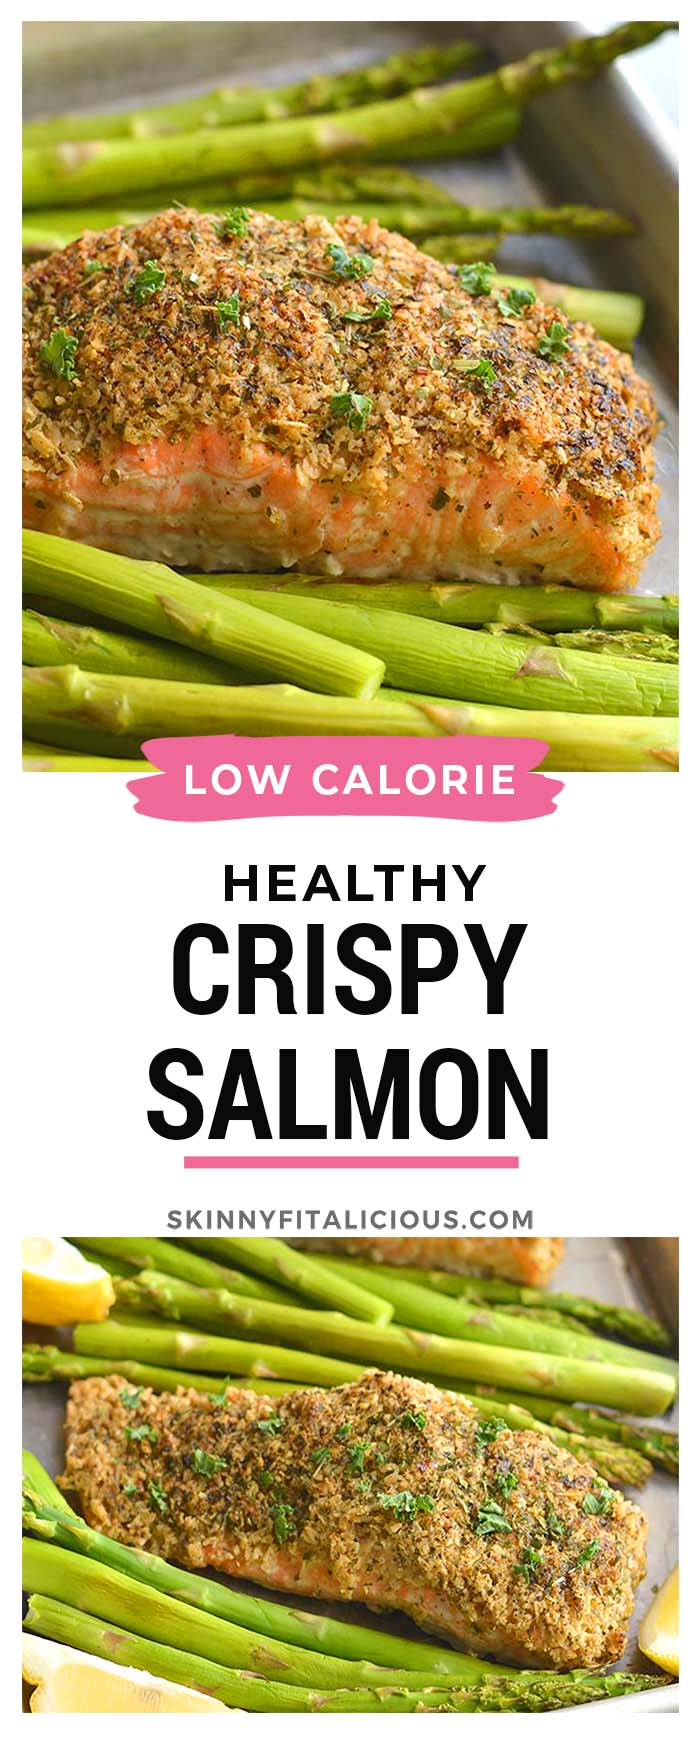 Crispy Oven Fried Salmon! Salmon crusted with gluten free oats, parsley and parmesan and baked on a sheet pan to crispy perfection. An healthy, gluten free weeknight meal!